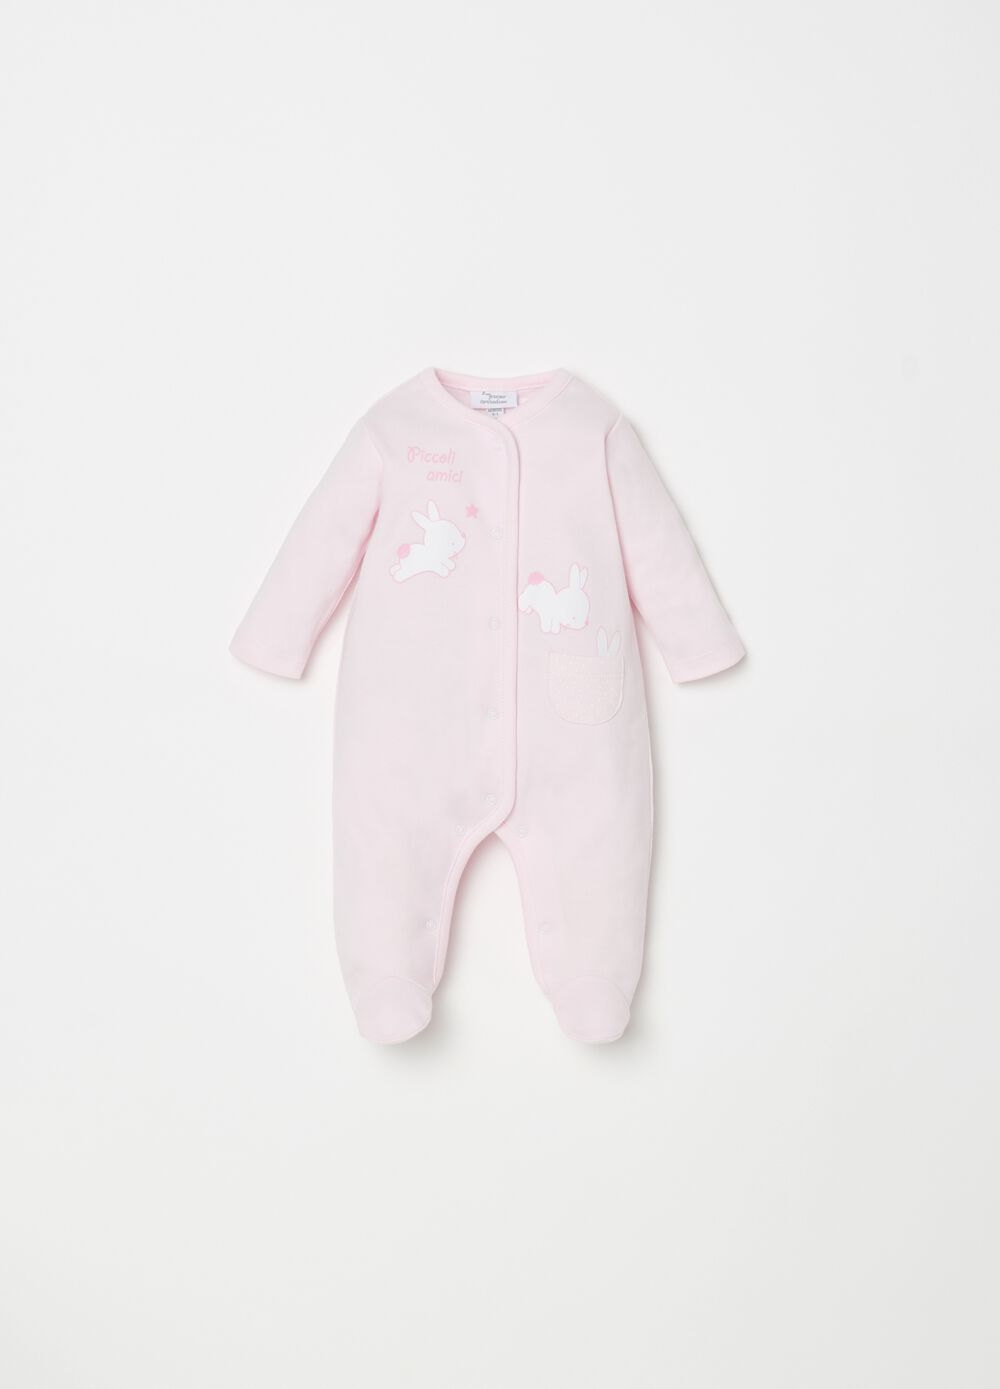 Onesie with feet, rabbit print and pattern